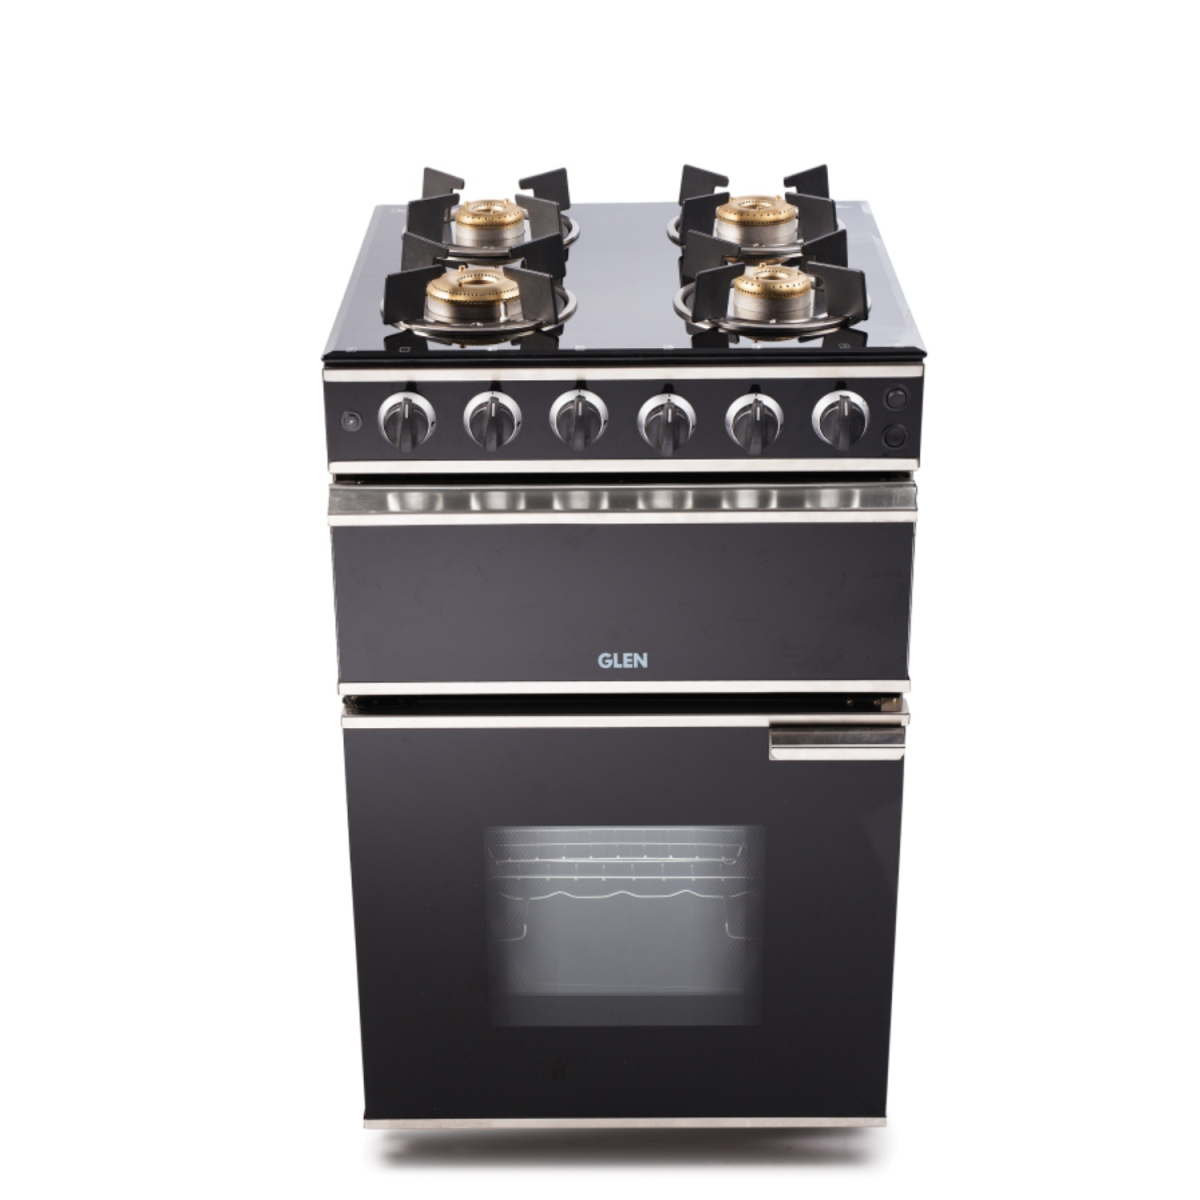 Glen 4 Burner Glass Gas Cooking Range 2014 Auto Ignition by Glen